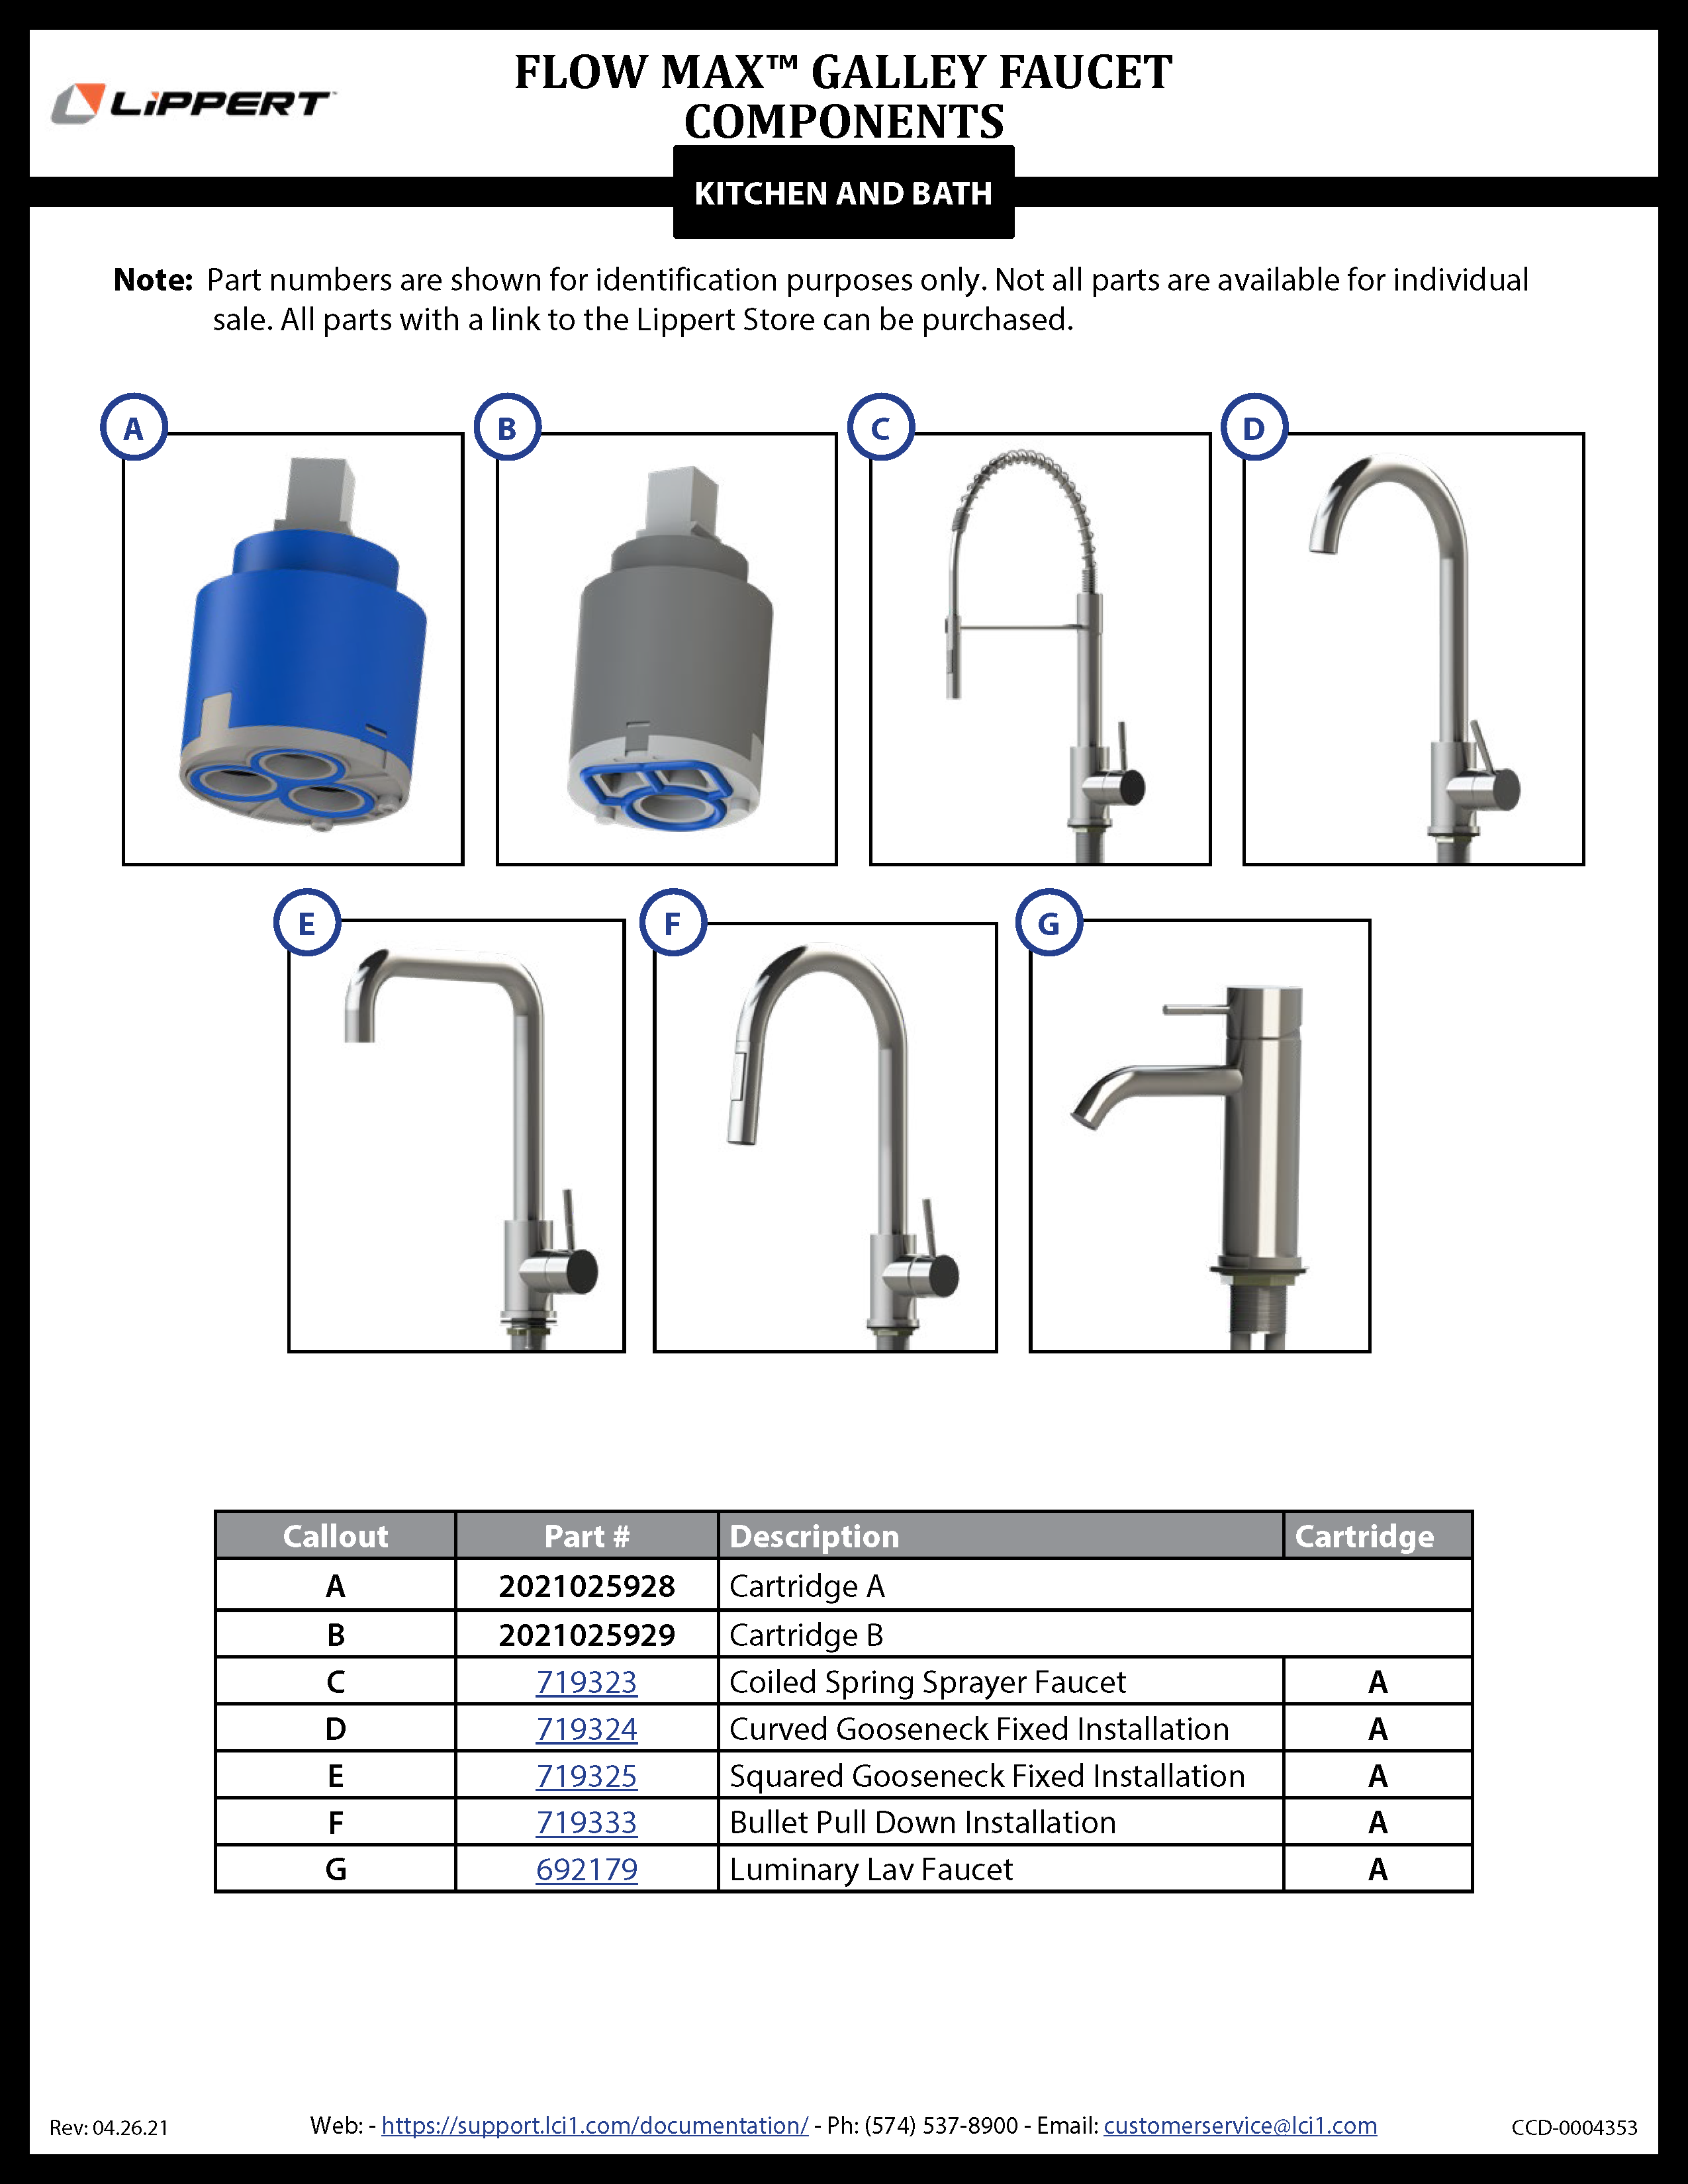 Flow Max® Galley Faucets Components